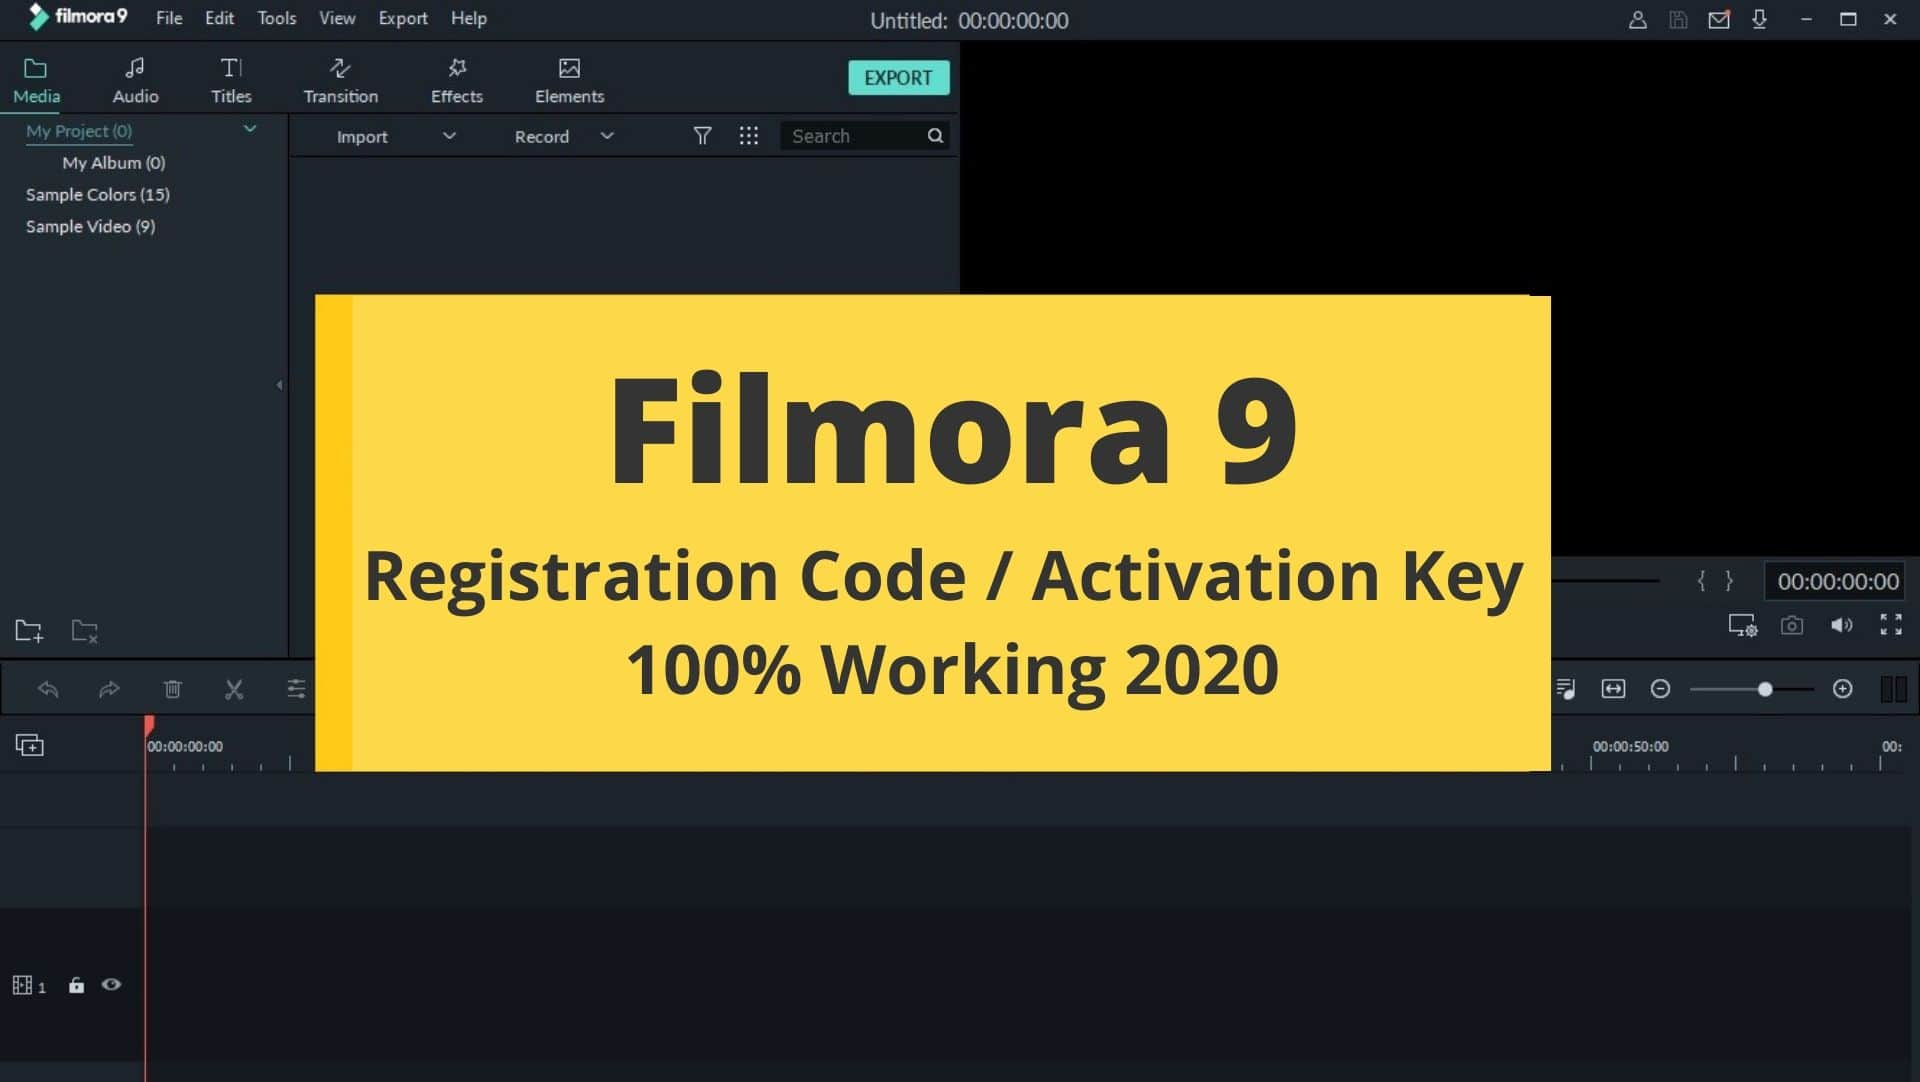 Wondershare Filmora 9 Free Download with ( Activation Key Code) 2020